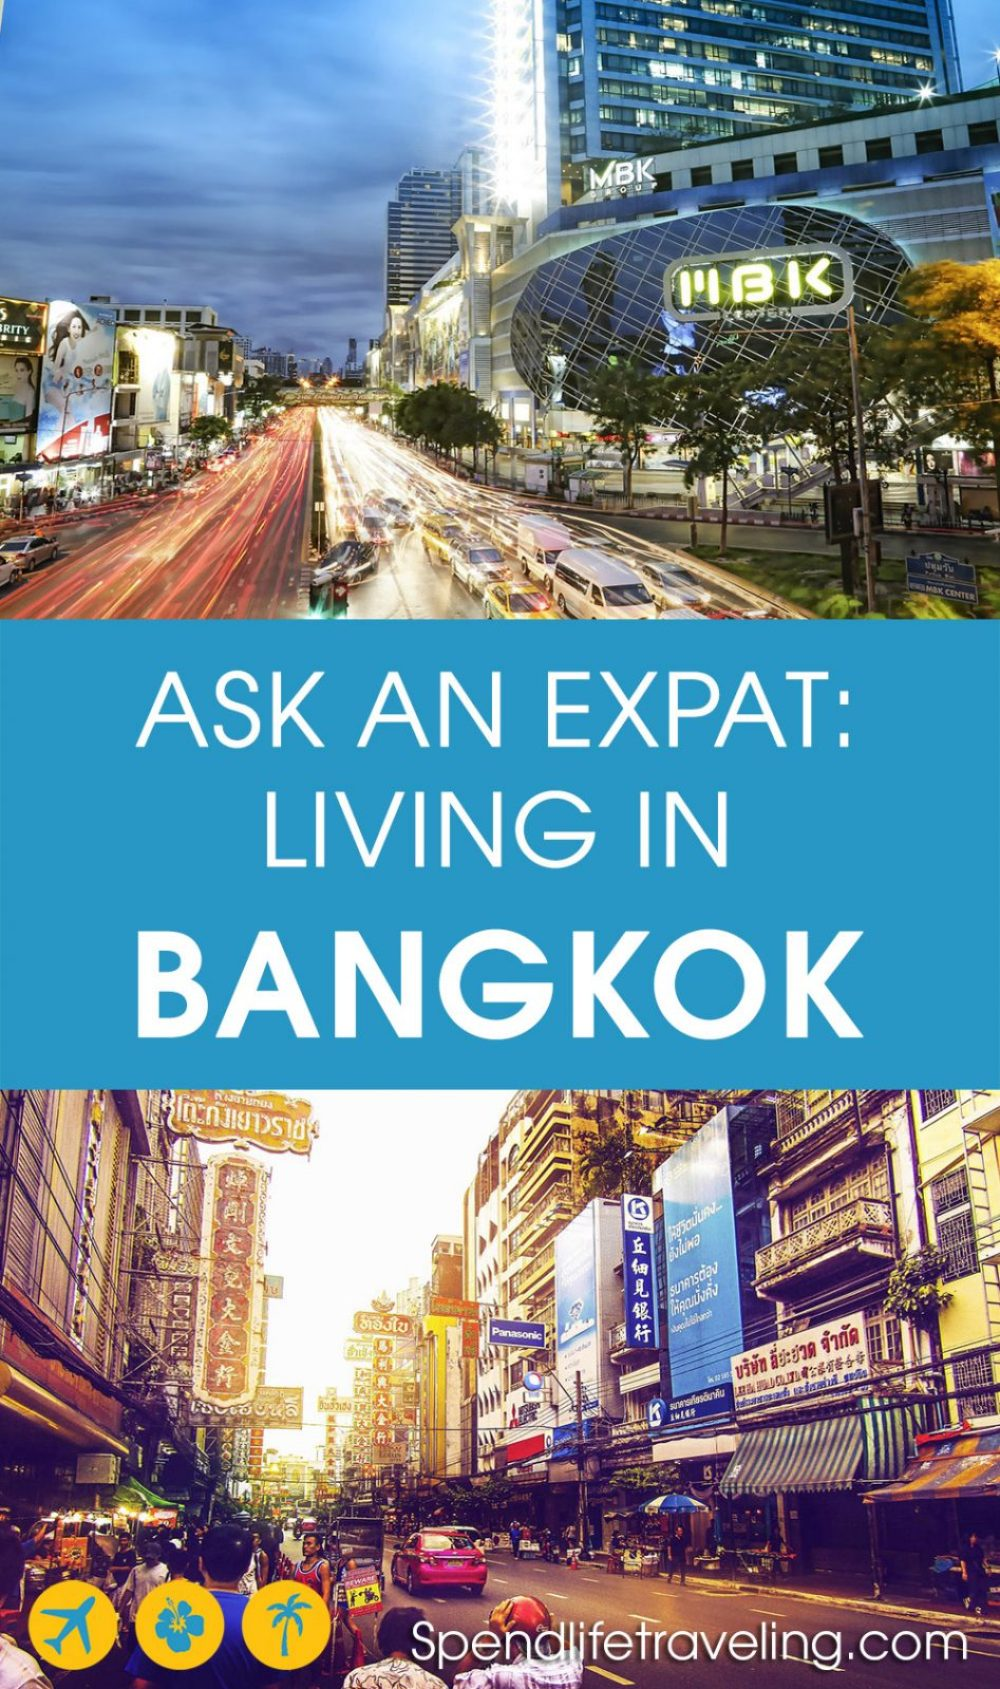 Are you thinking about moving to #Bangkok? Or do you just want to know more about what Bangkok is really like? Check out this interview with an #expat about moving to and living in Bangkok. #expatlife